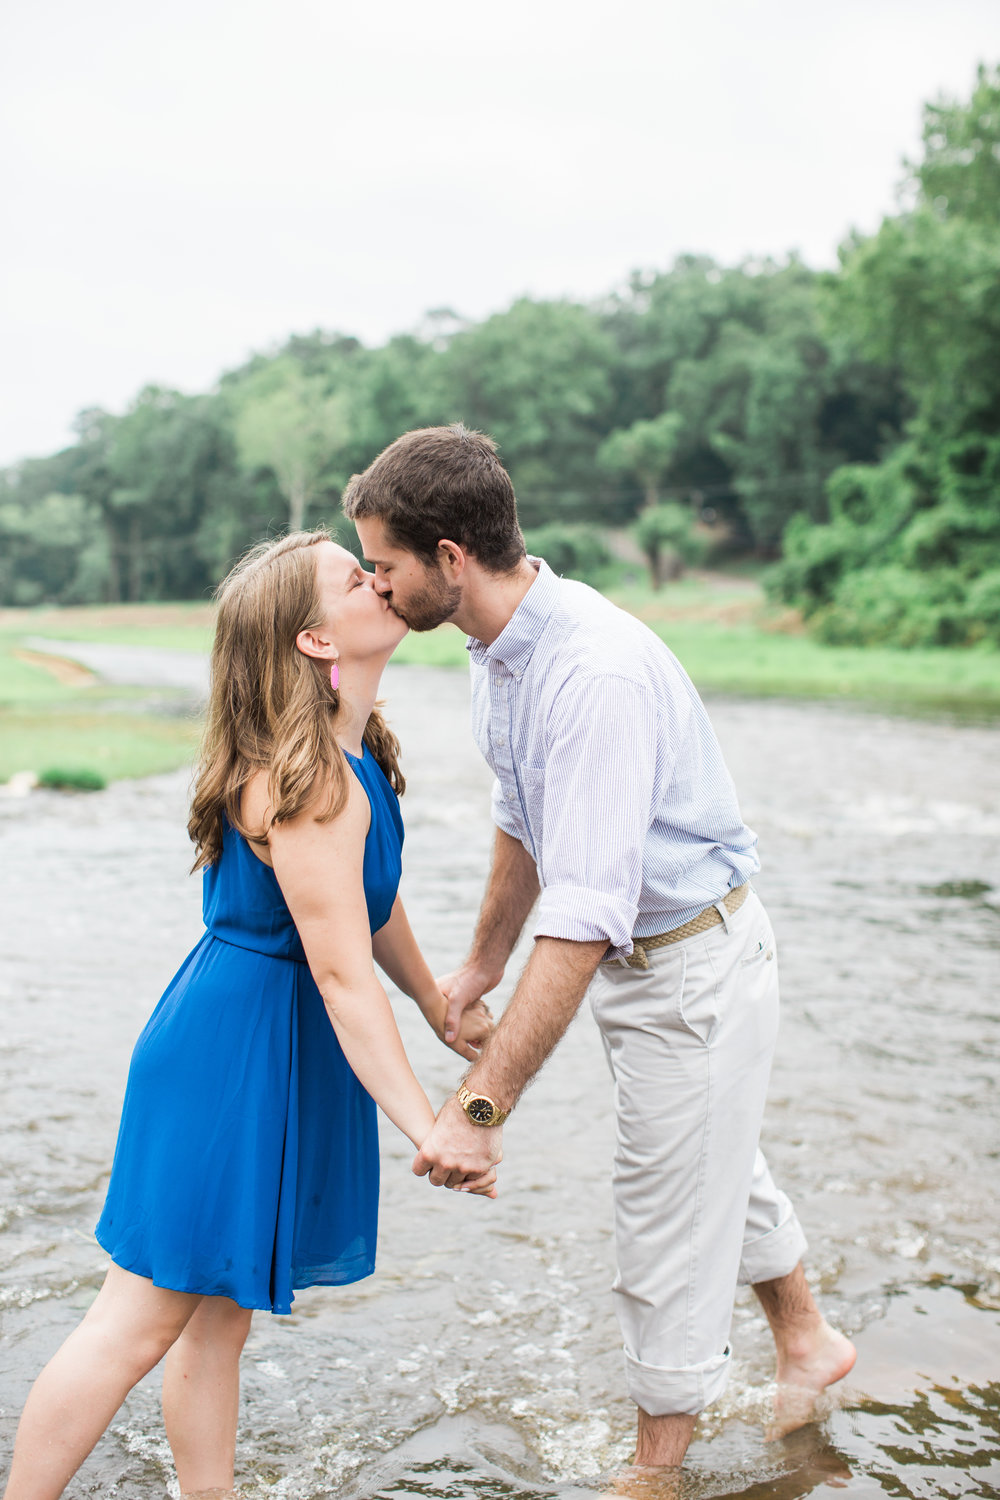 Matty-Drollette-Engagments-Montgomery-Alabama-Photographer-100.jpg